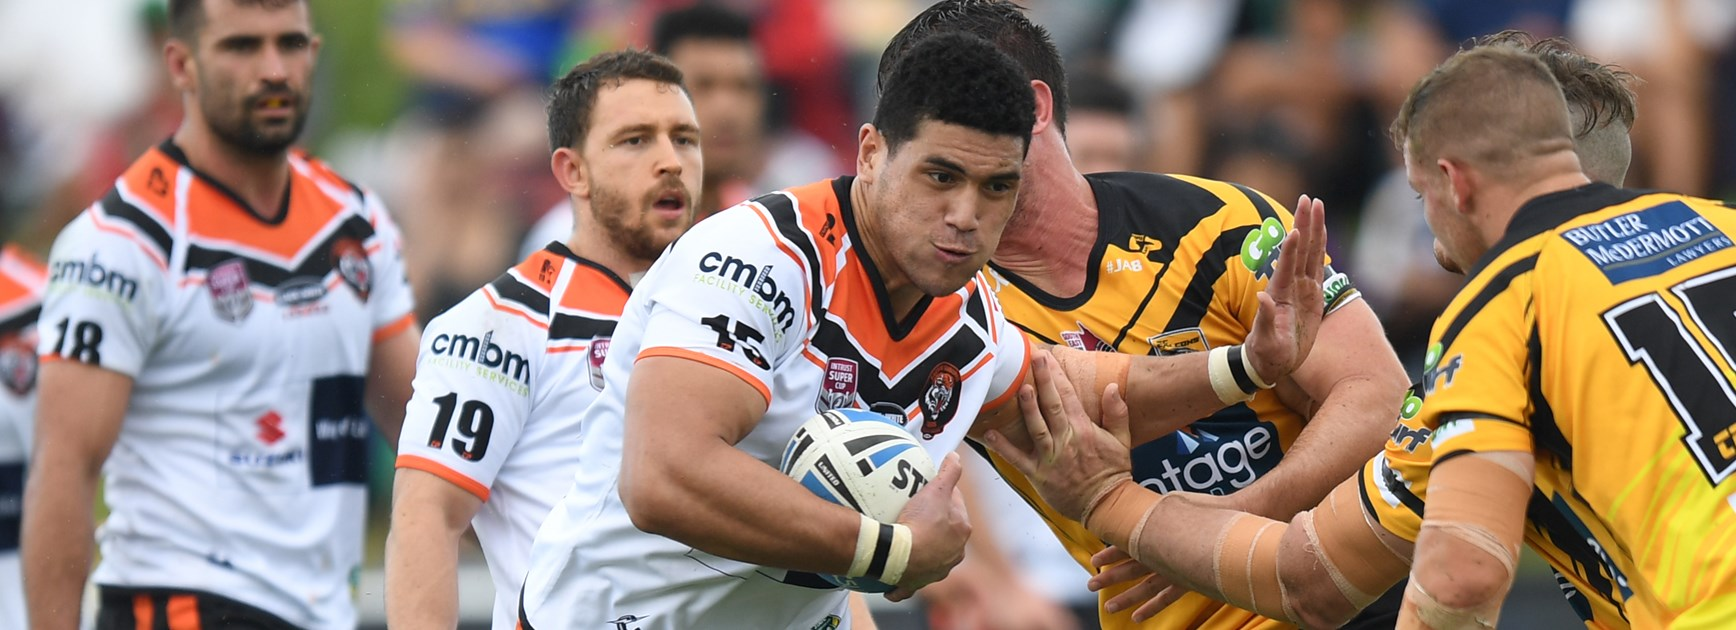 2019 Year in Review: Easts Tigers